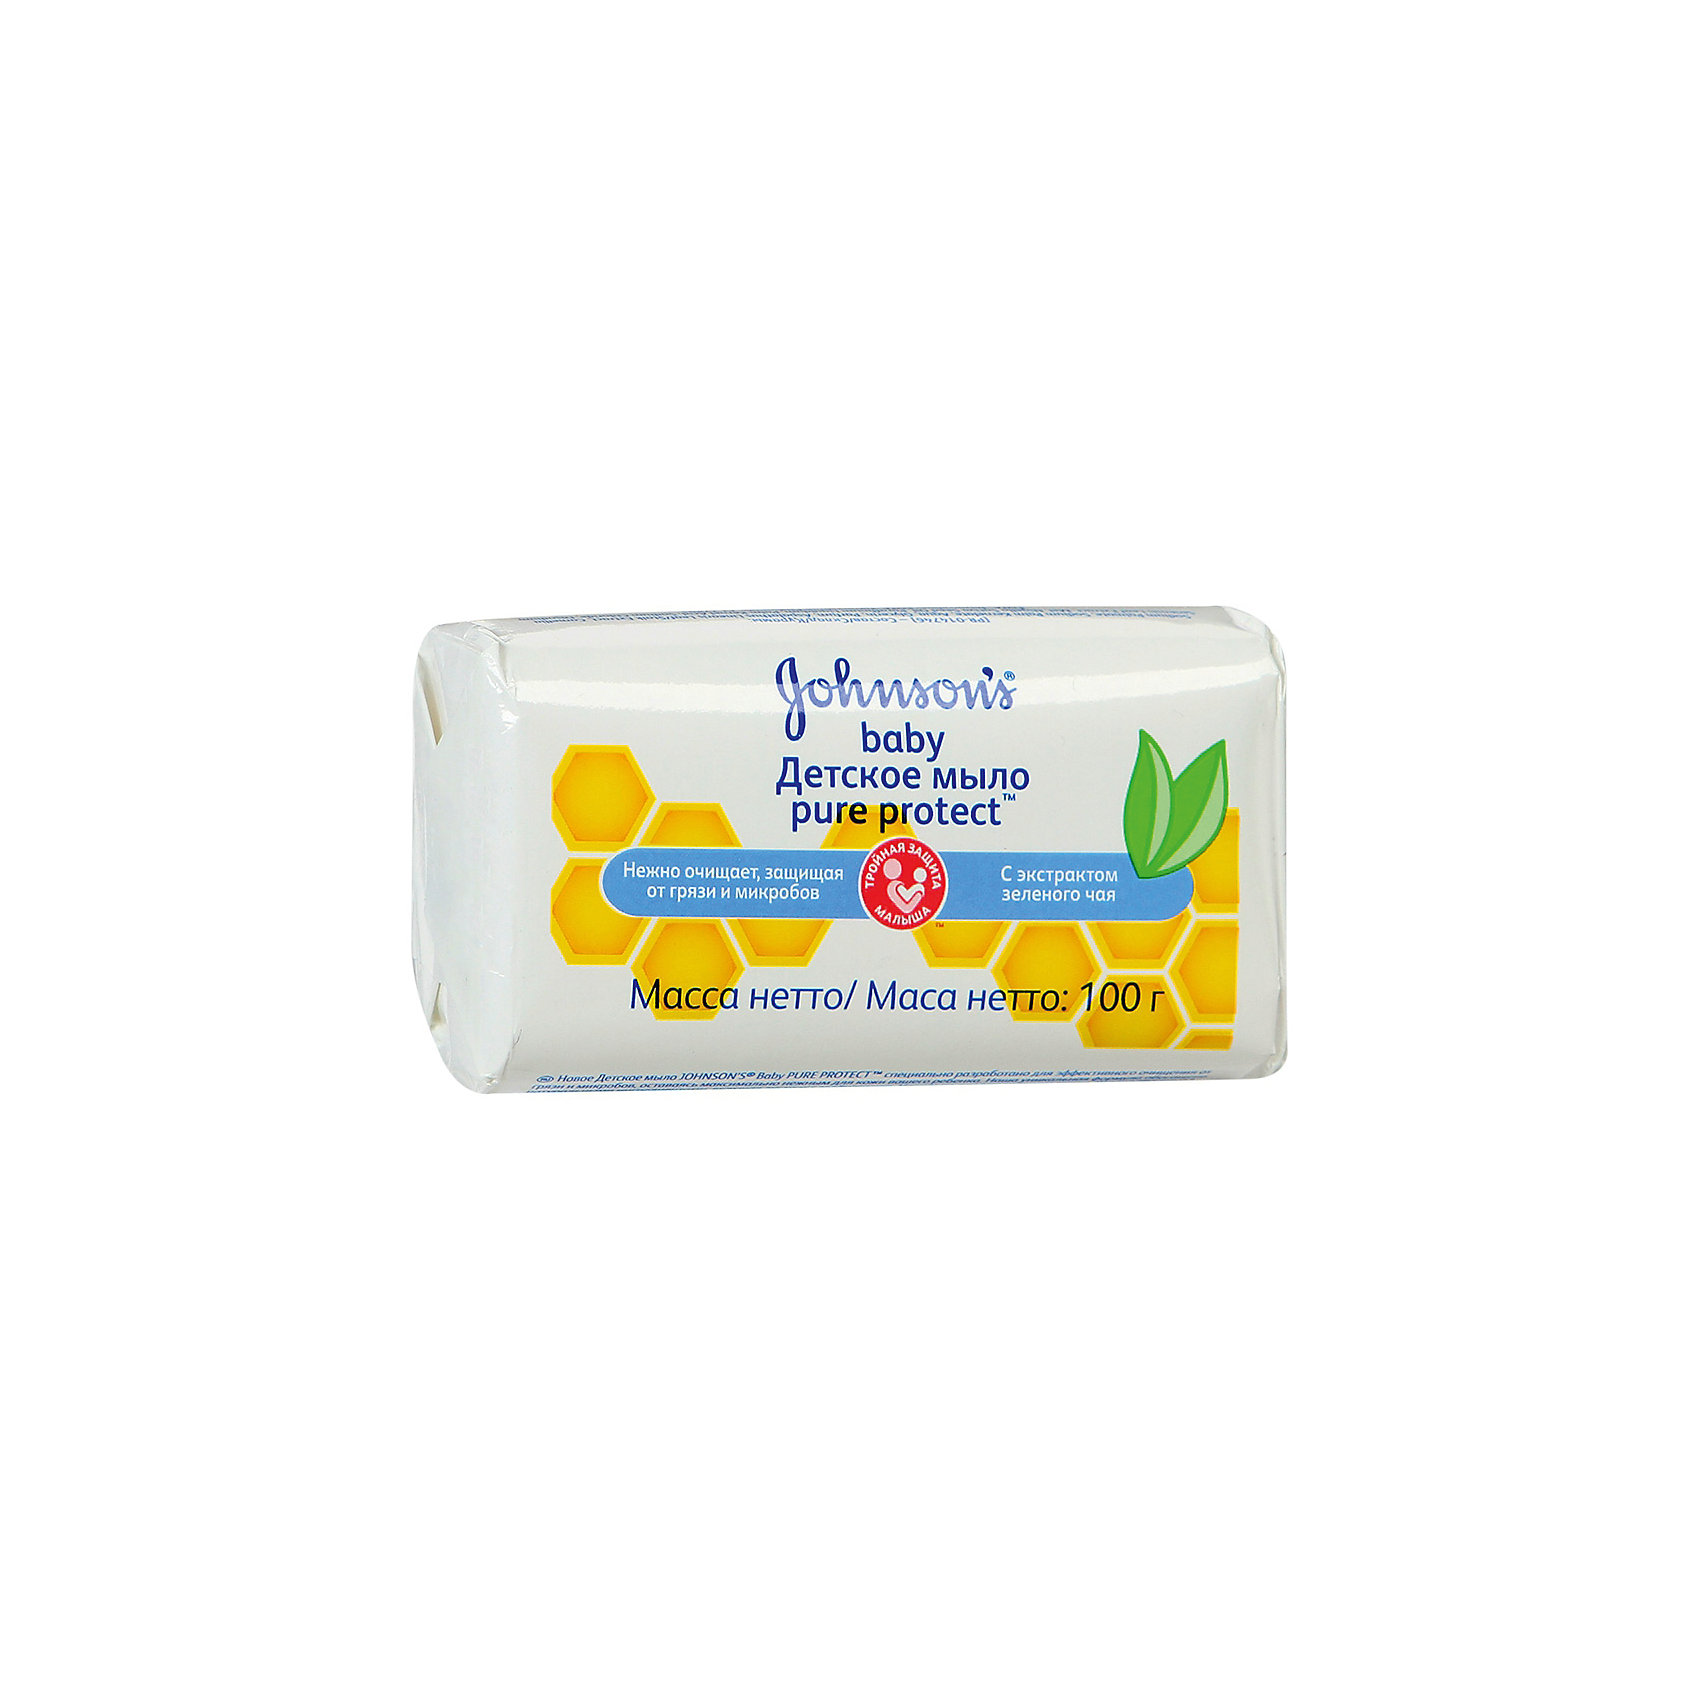 Детское мыло Pure Protect 100 гр , Johnsons baby